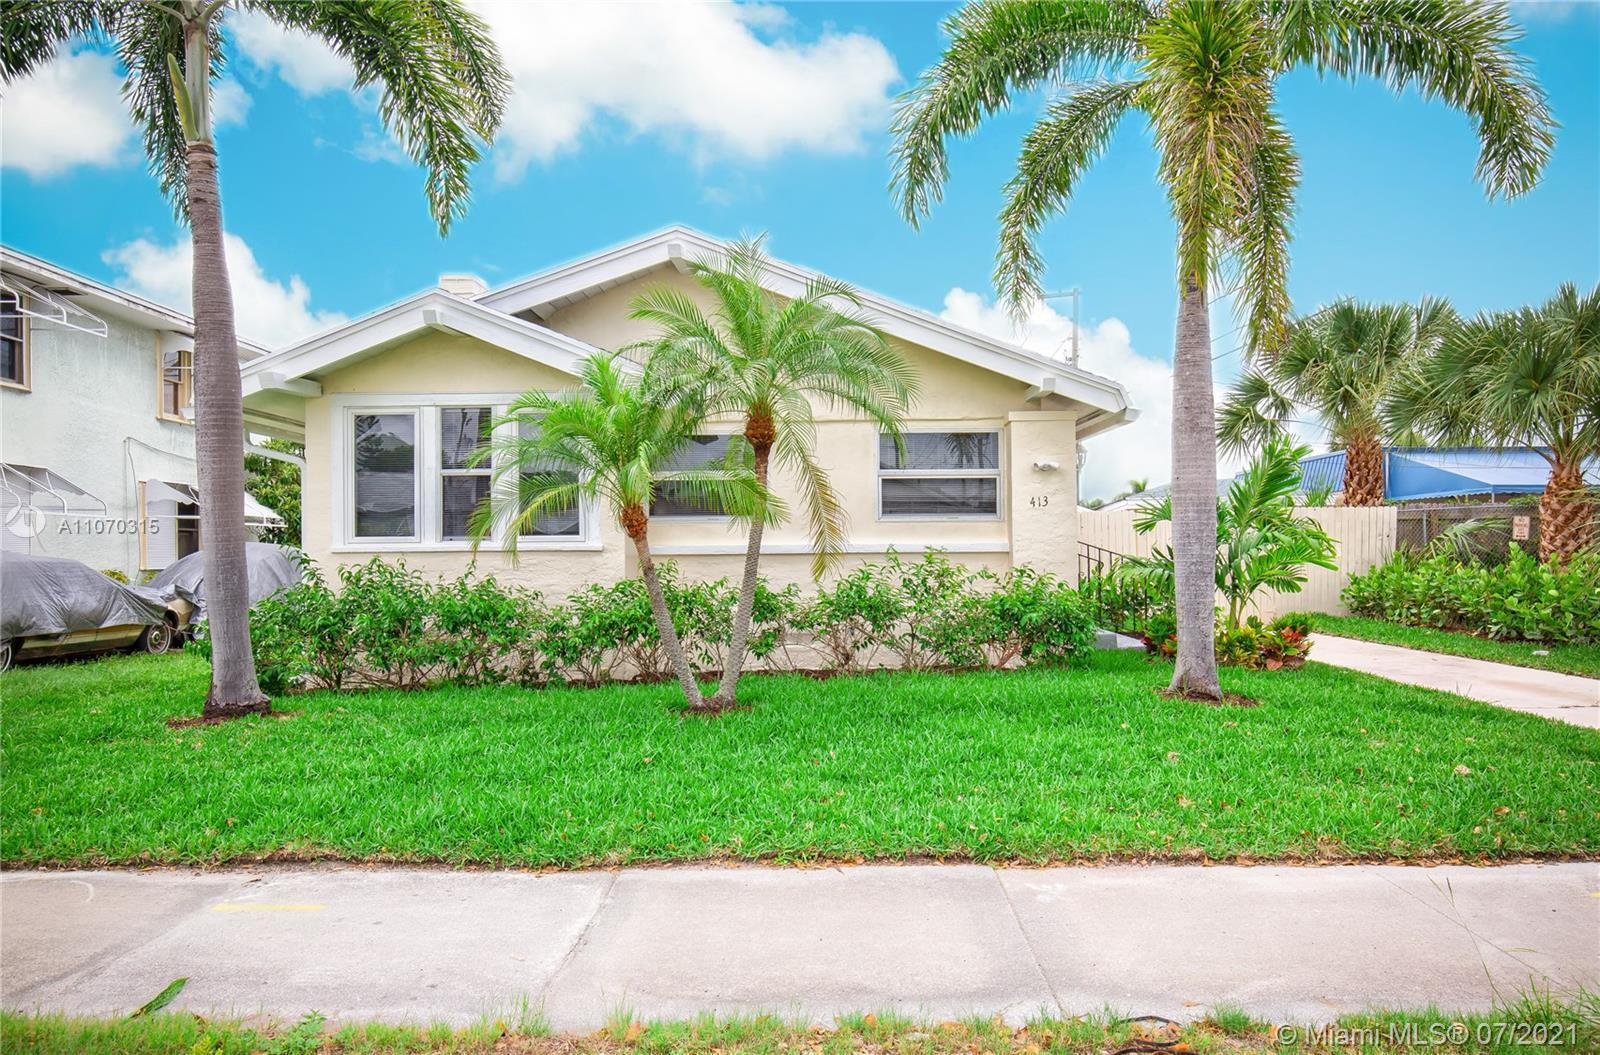 Rare gem! Beautifully updated and landscaped craftsman-style home located in the heart of WPB 1,326